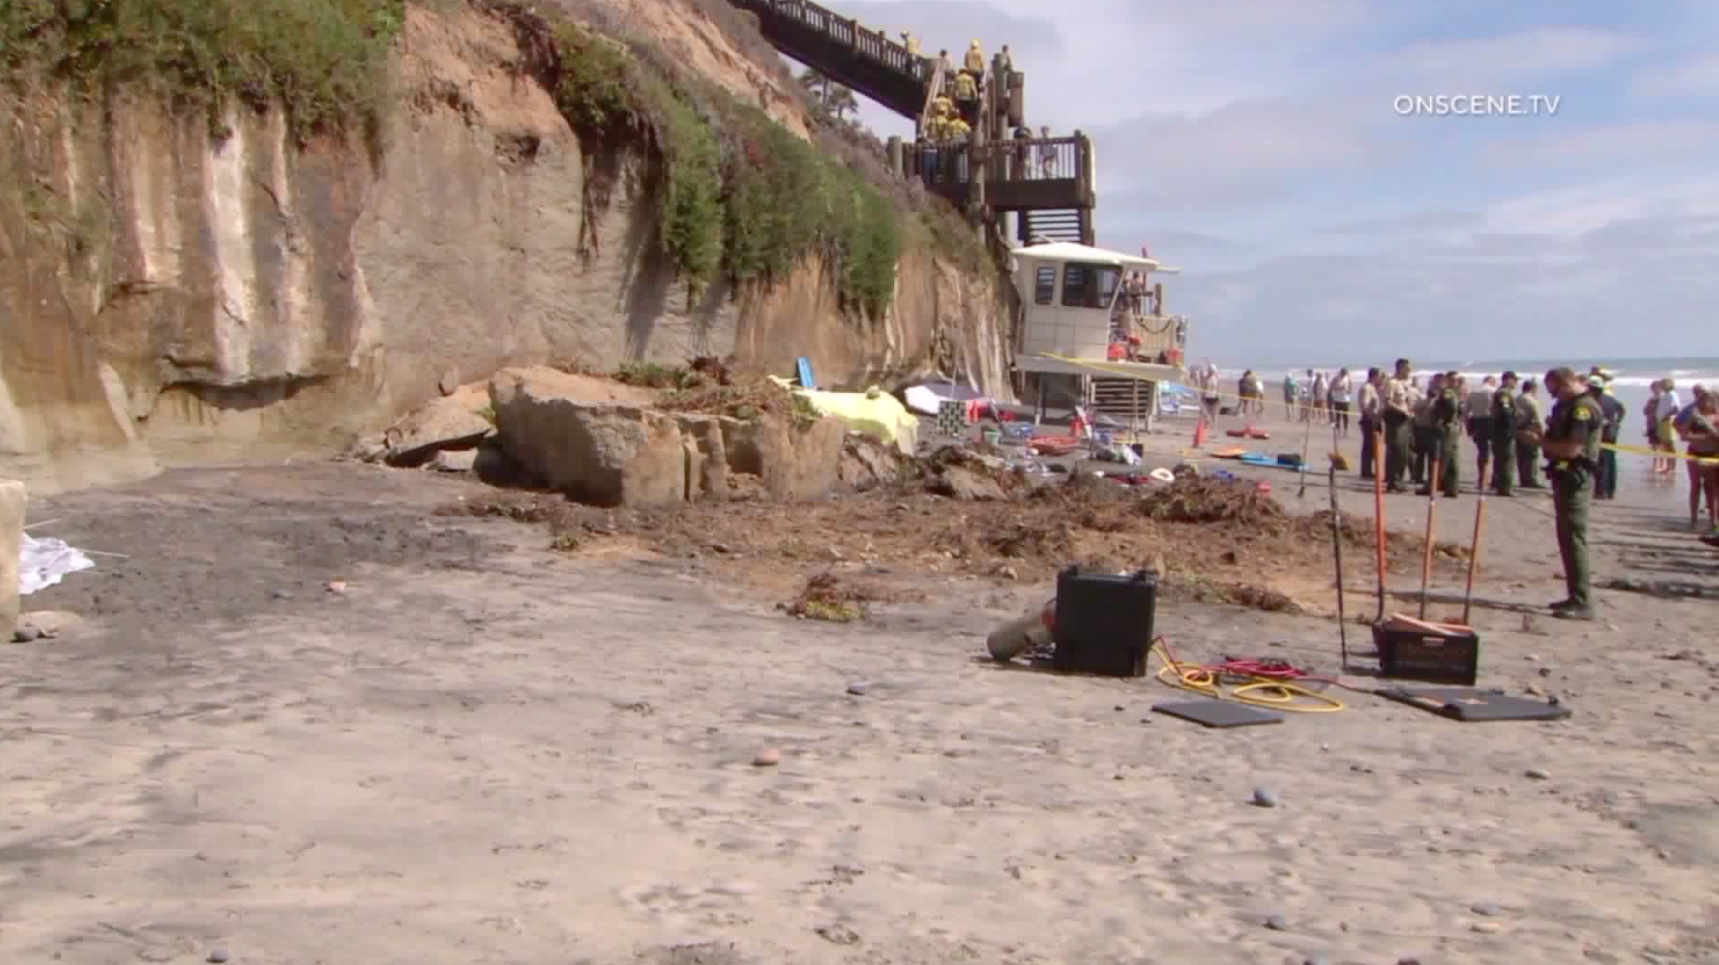 The area where a cliff collapsed in Encinitas, killing three women, is seen Aug. 2, 2019. (Credit: Onscene.TV)